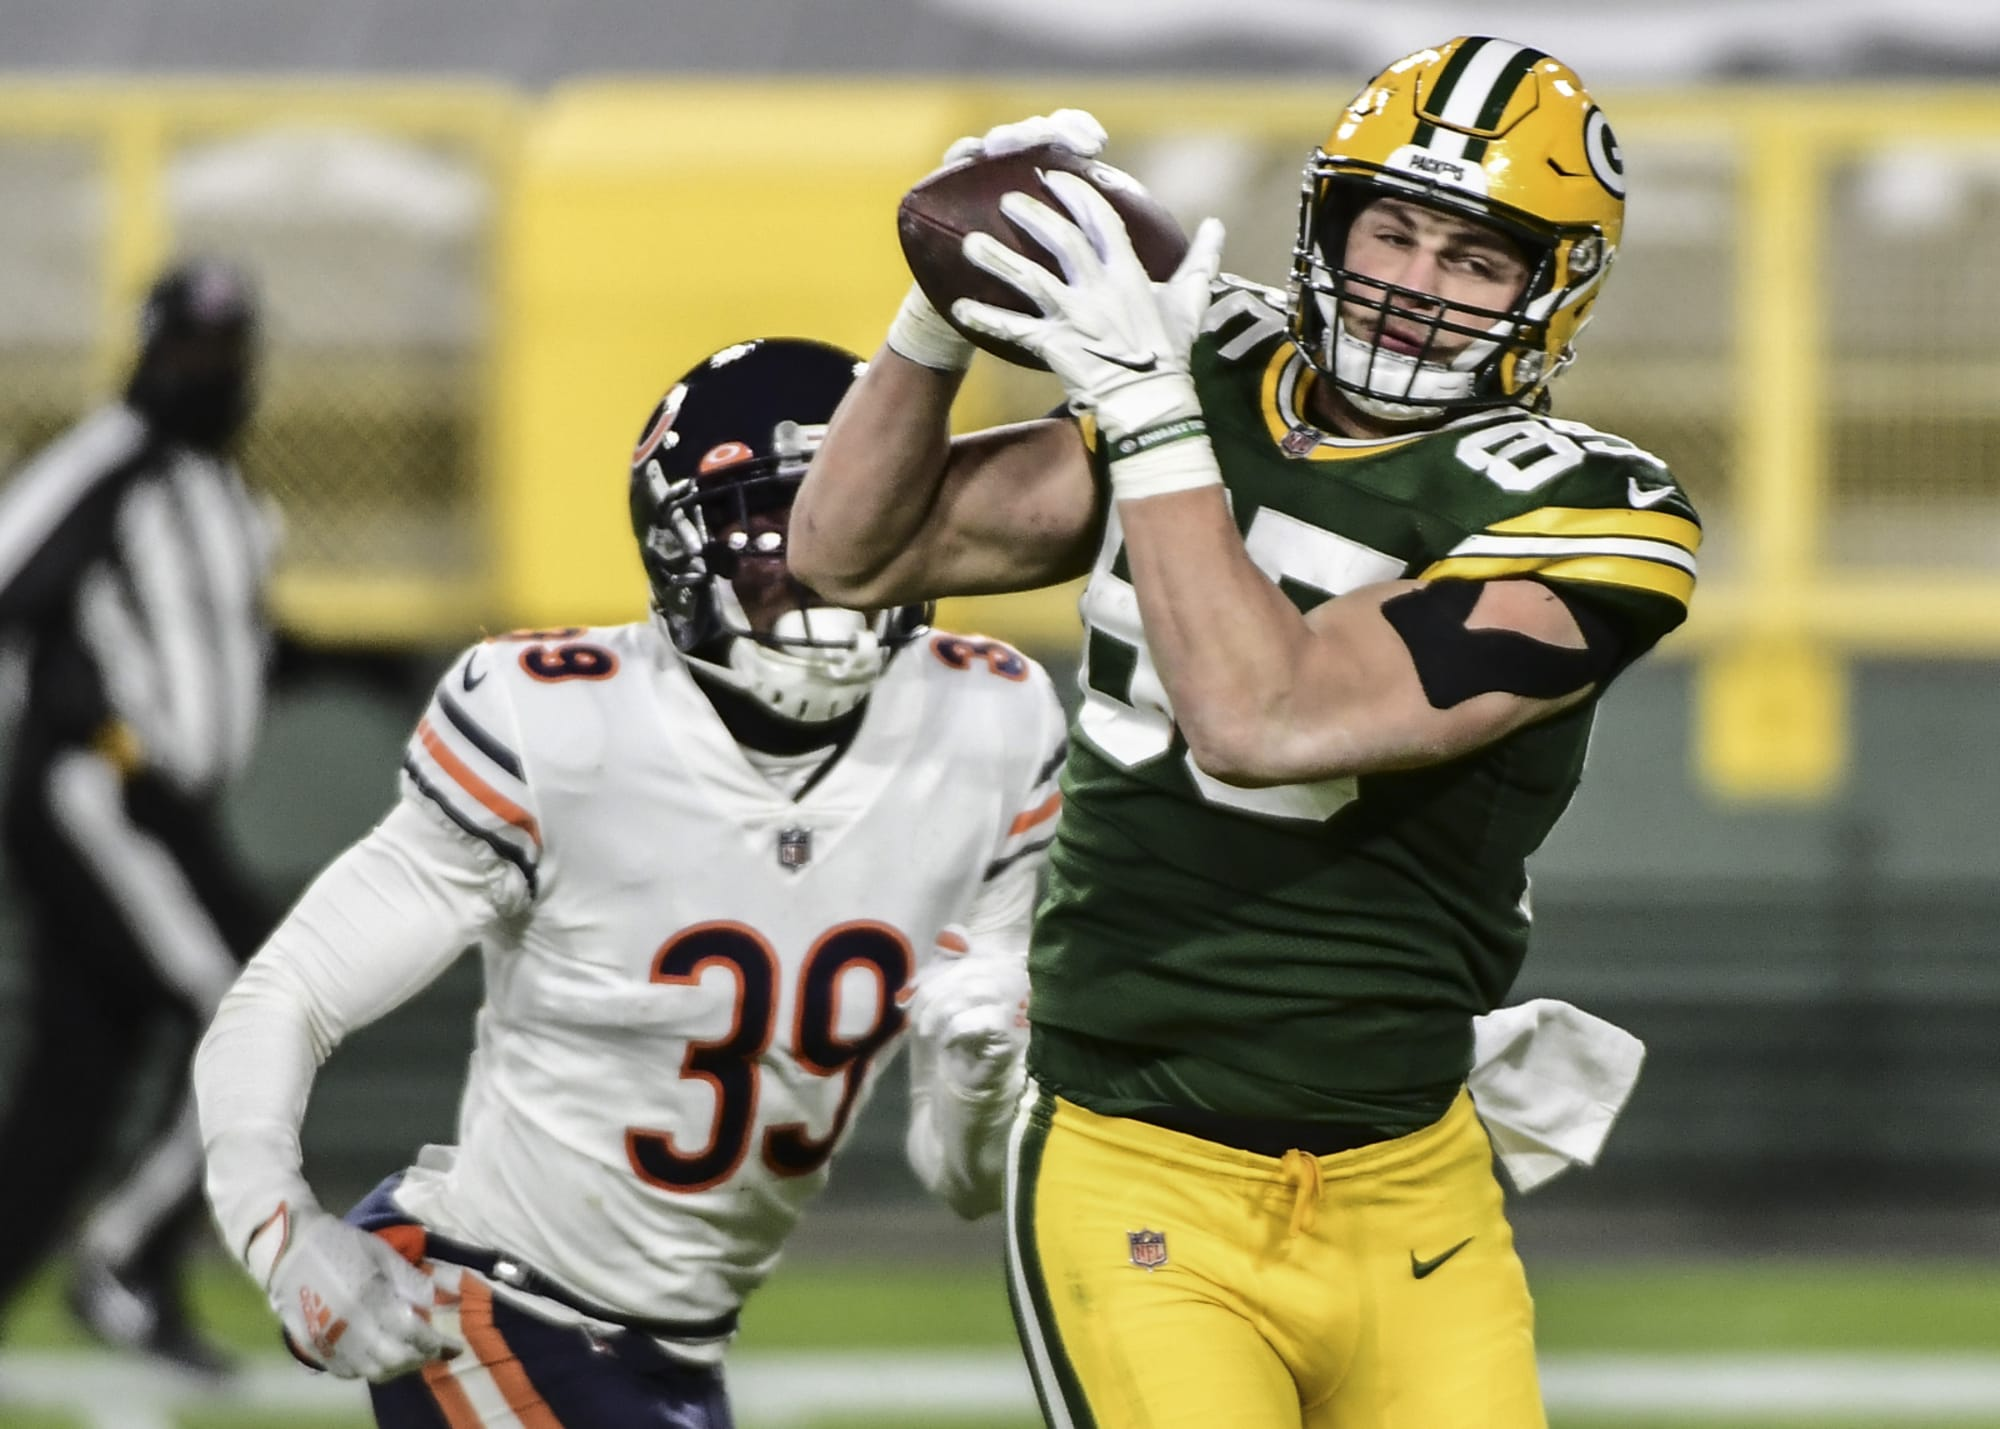 Green Bay Packers 2021 NFL Draft Position Preview: Is TE an Option?